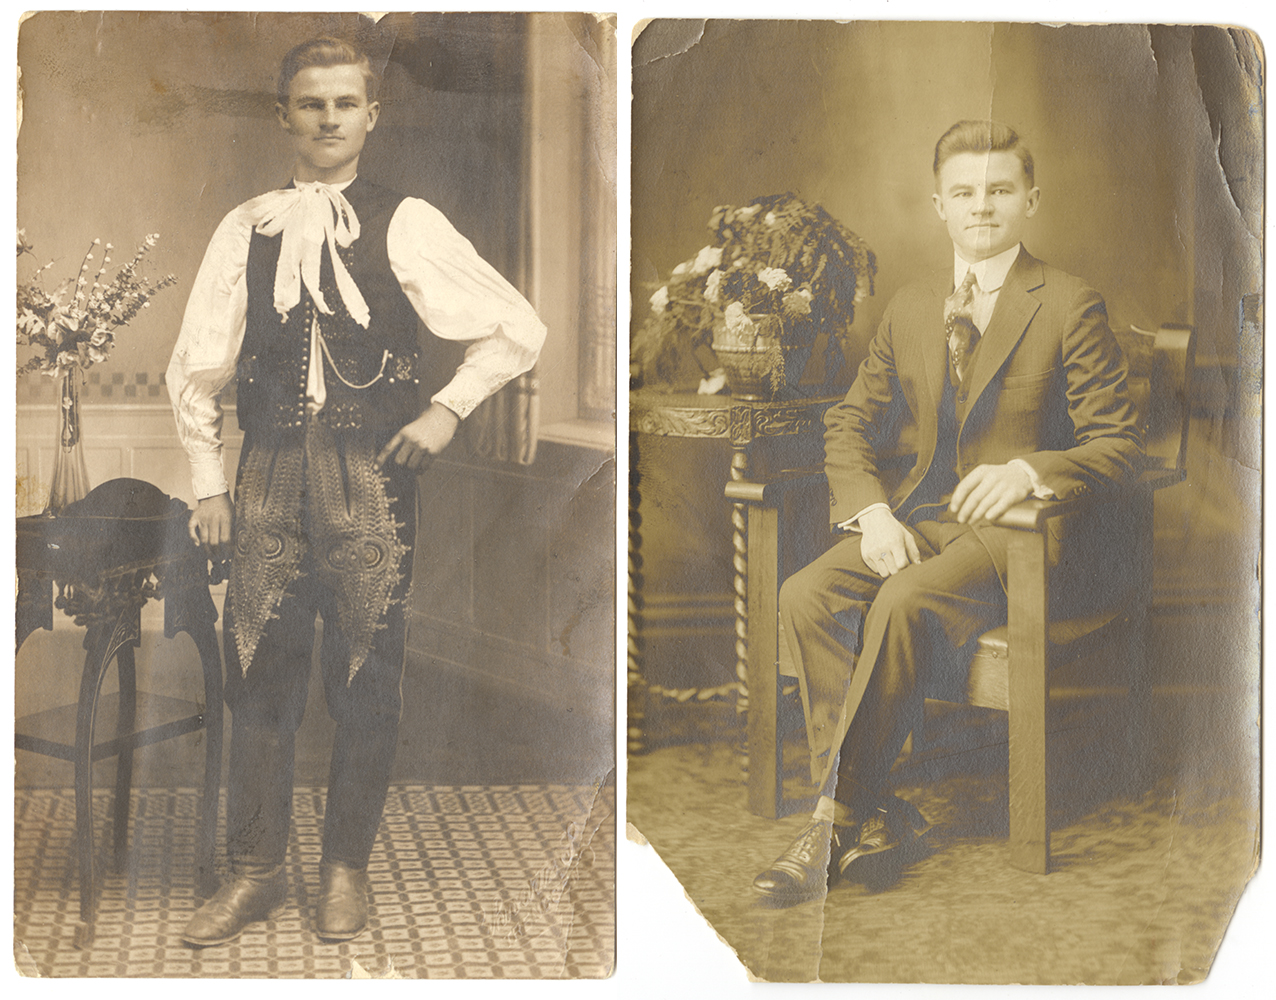 George Hasko in his native Slovak outfit and his American clothes, 1920s. | Heinz History Center